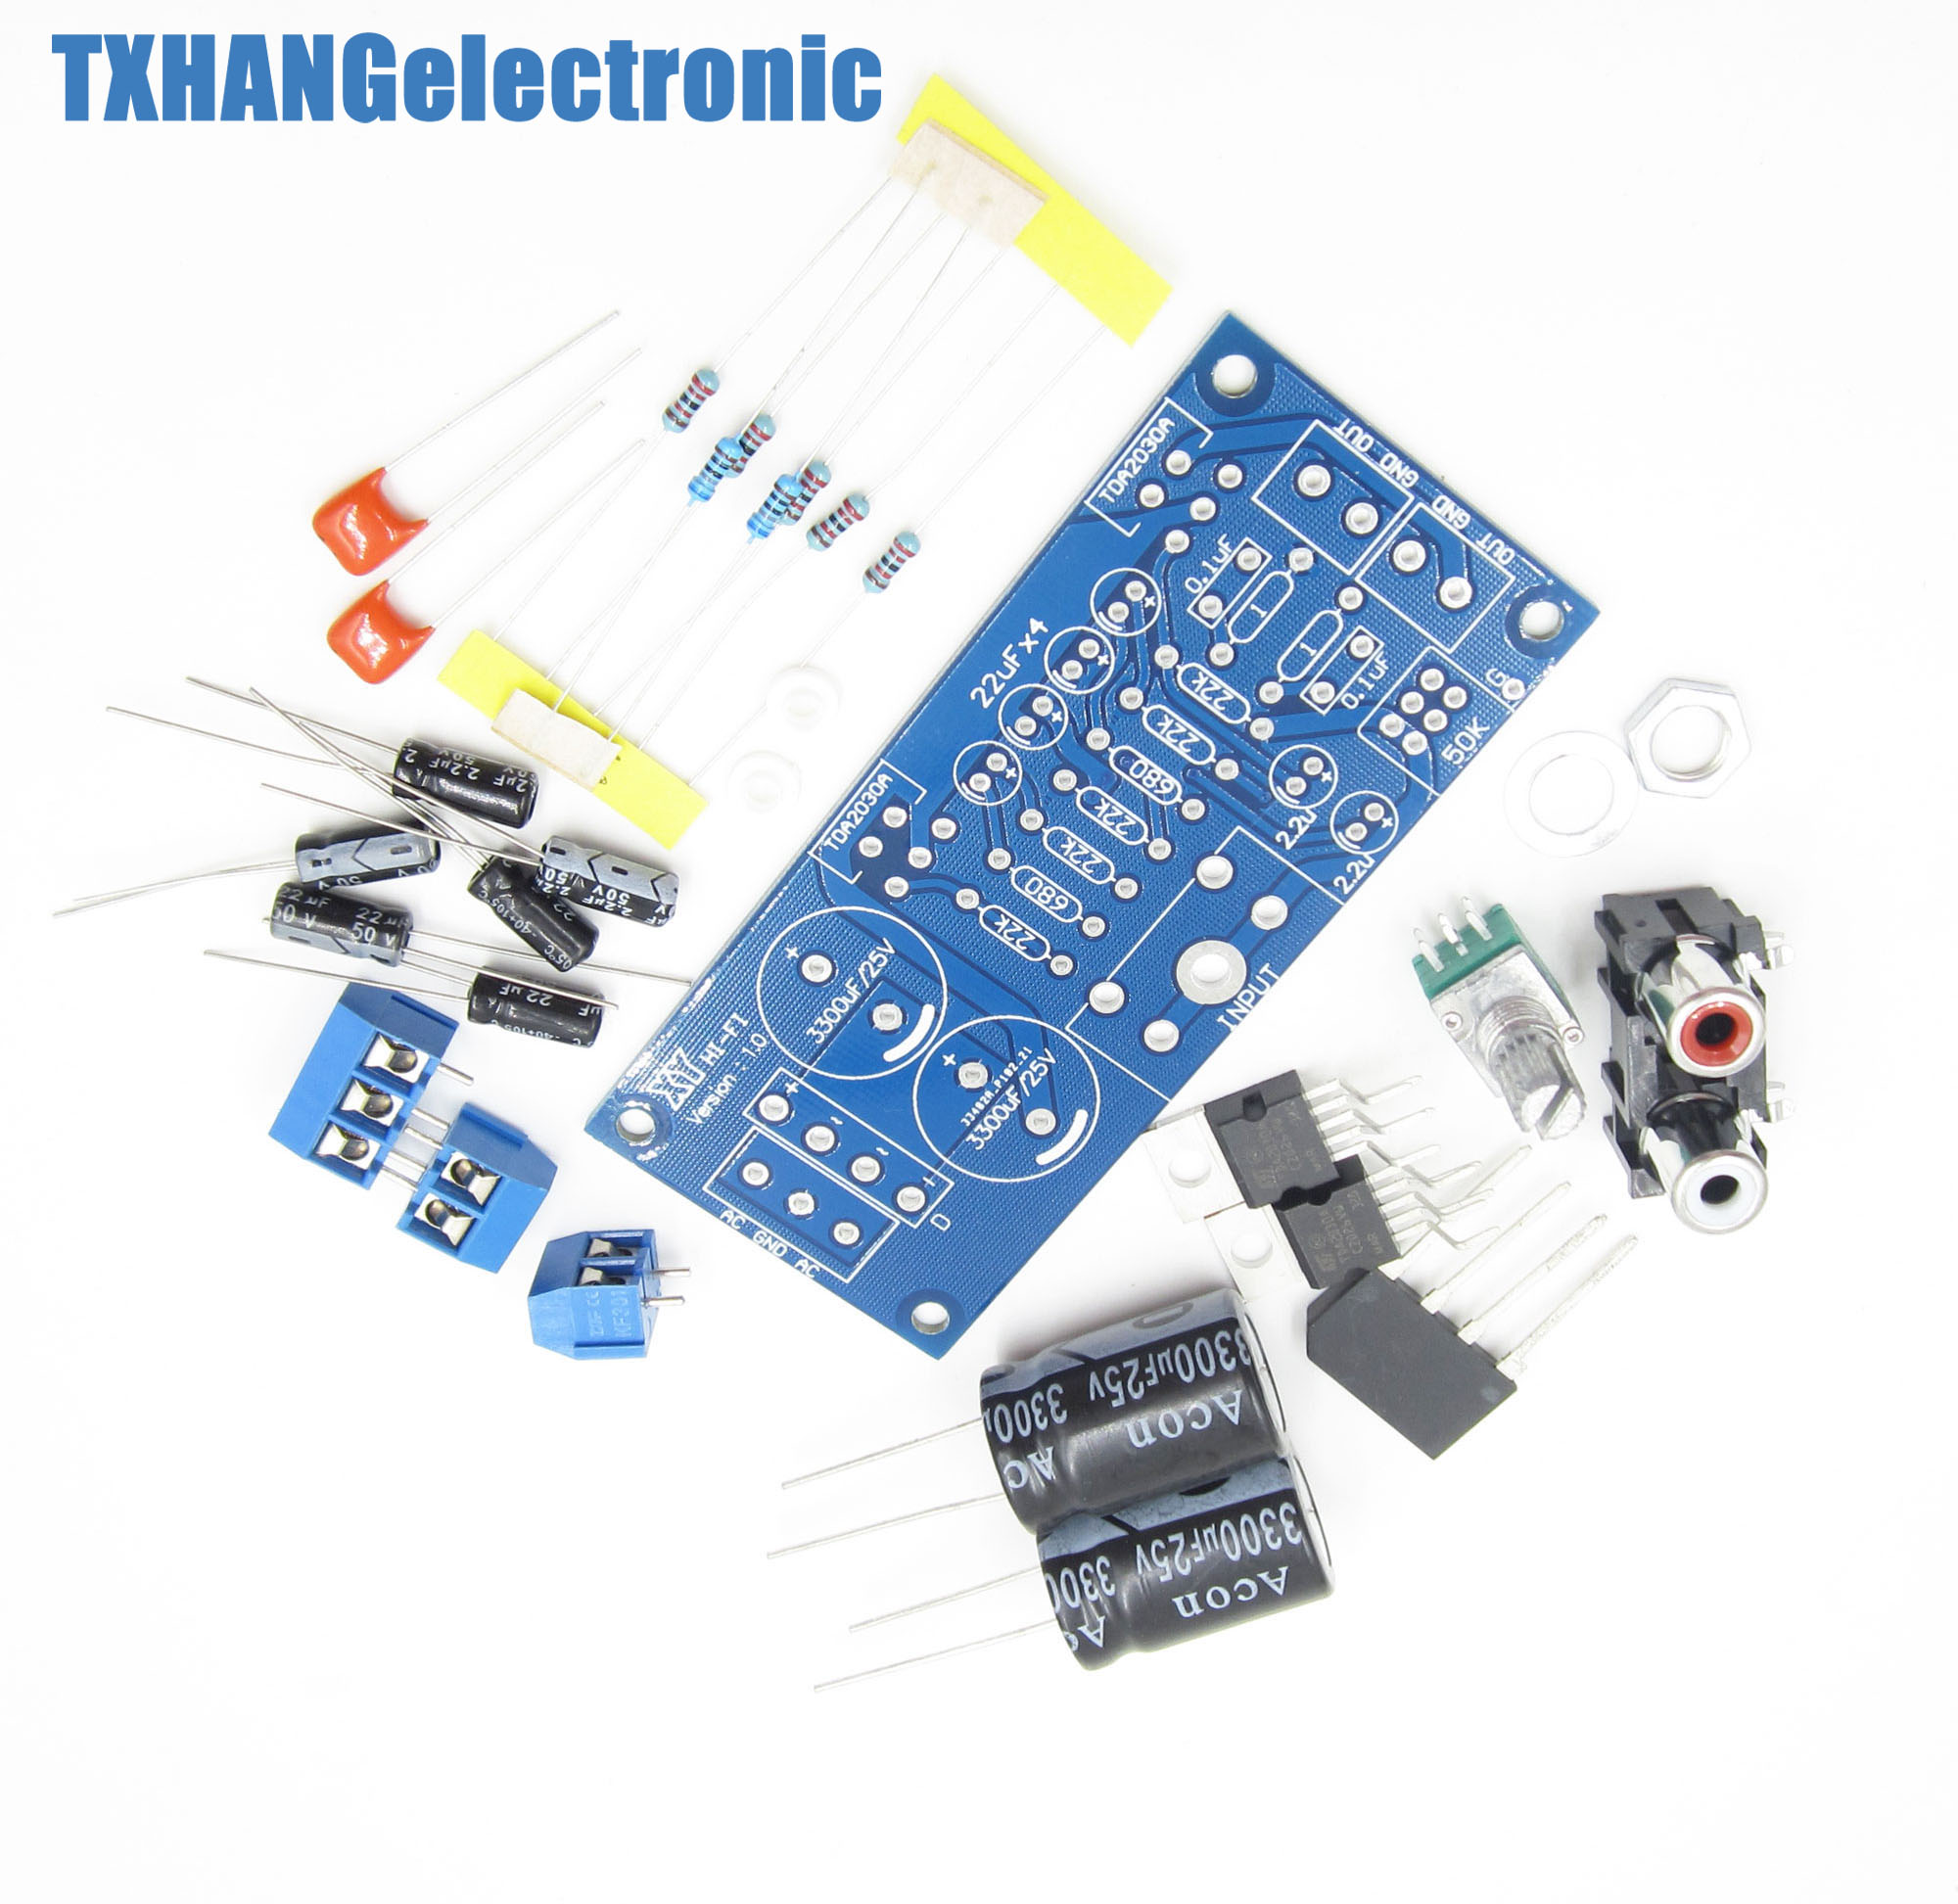 Tda2030a Audio Power Amplifier Diy Kit Components Ocl 18w X 2 Btl Mono 36w In Integrated Circuits From Electronic Supplies On